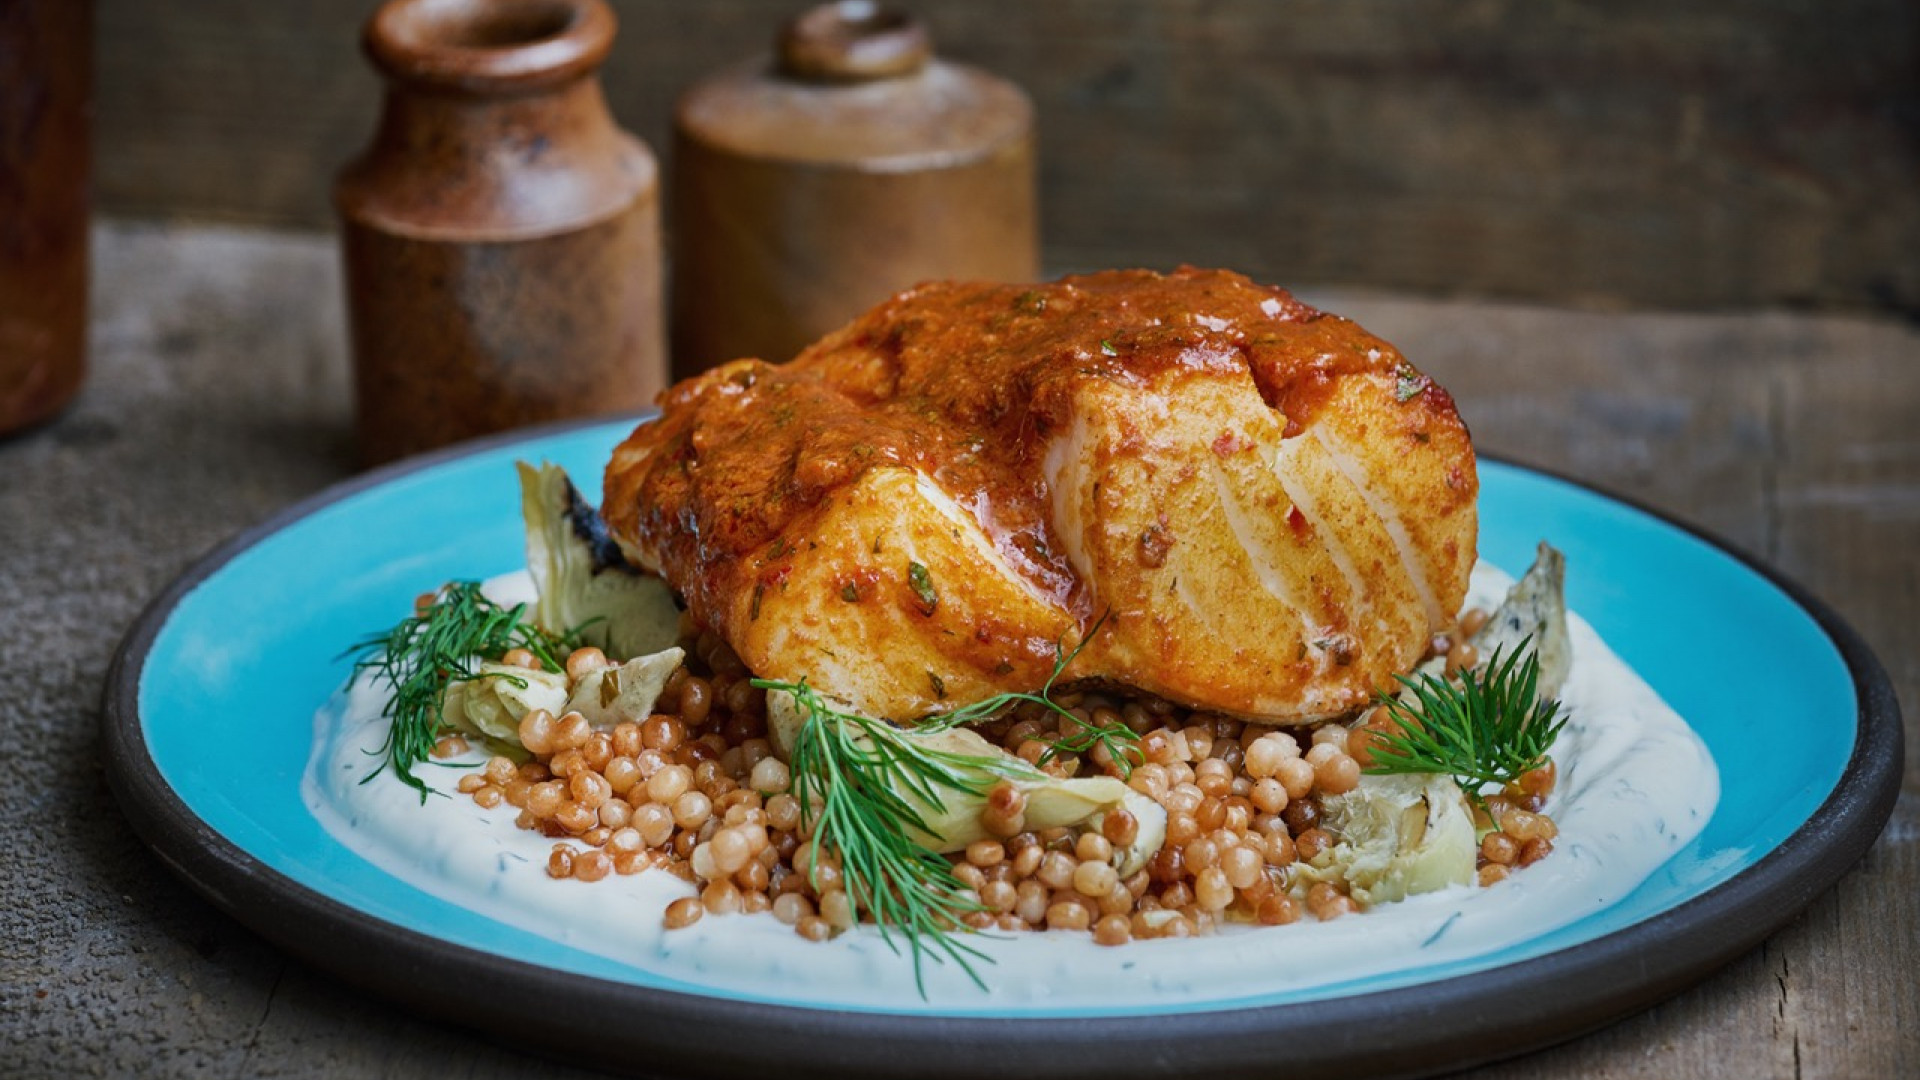 Cod smothered in chermoula with artichokes and Israeli cous cous